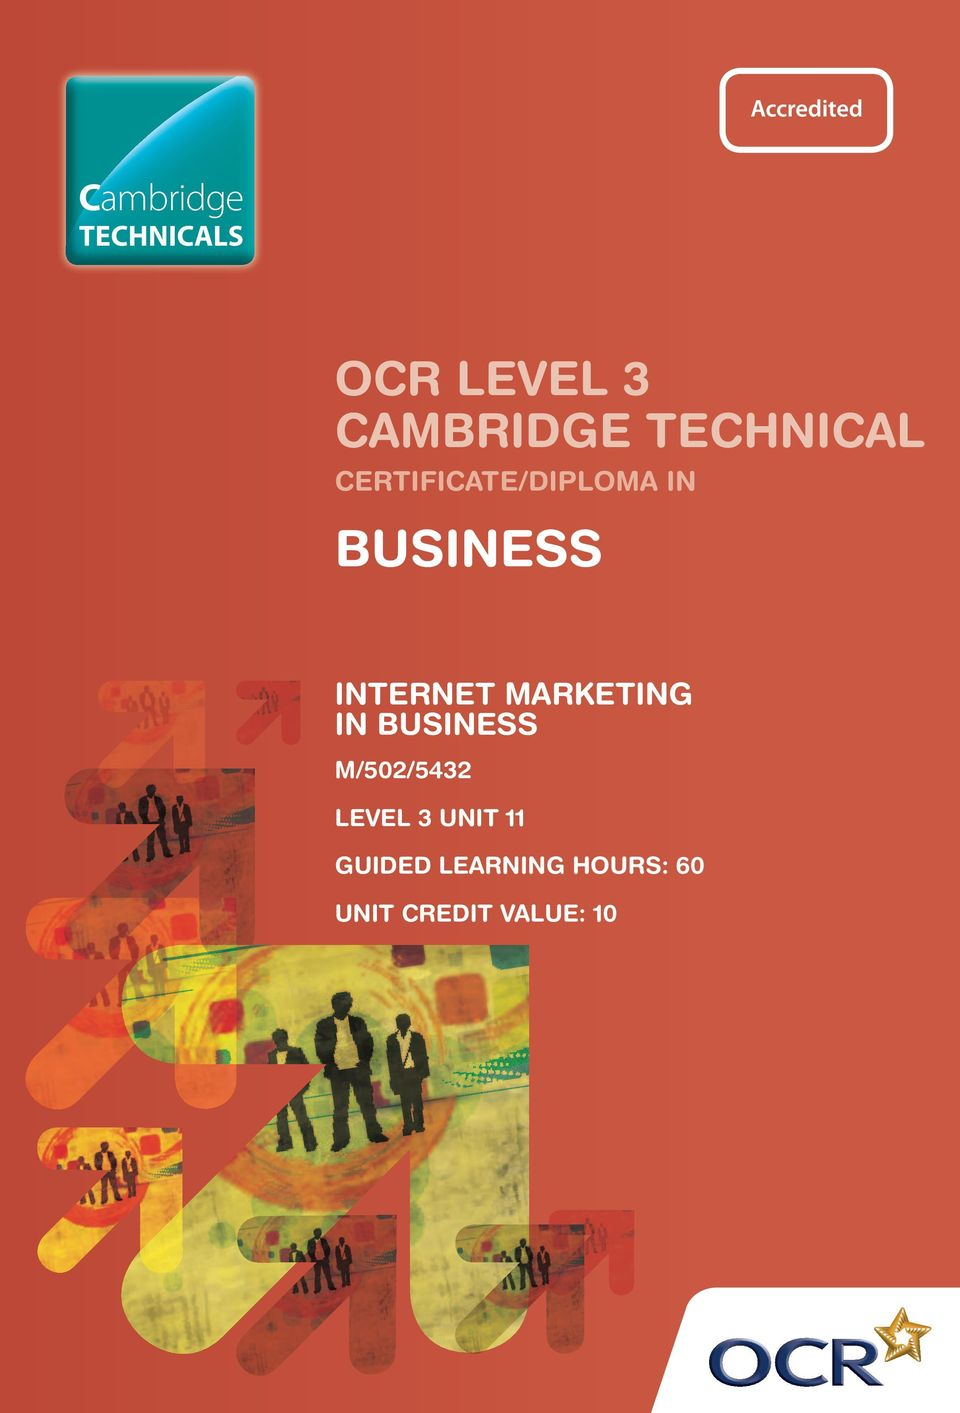 INTERNET MARKETING IN BUSINESS M/502/5432 LEVEL